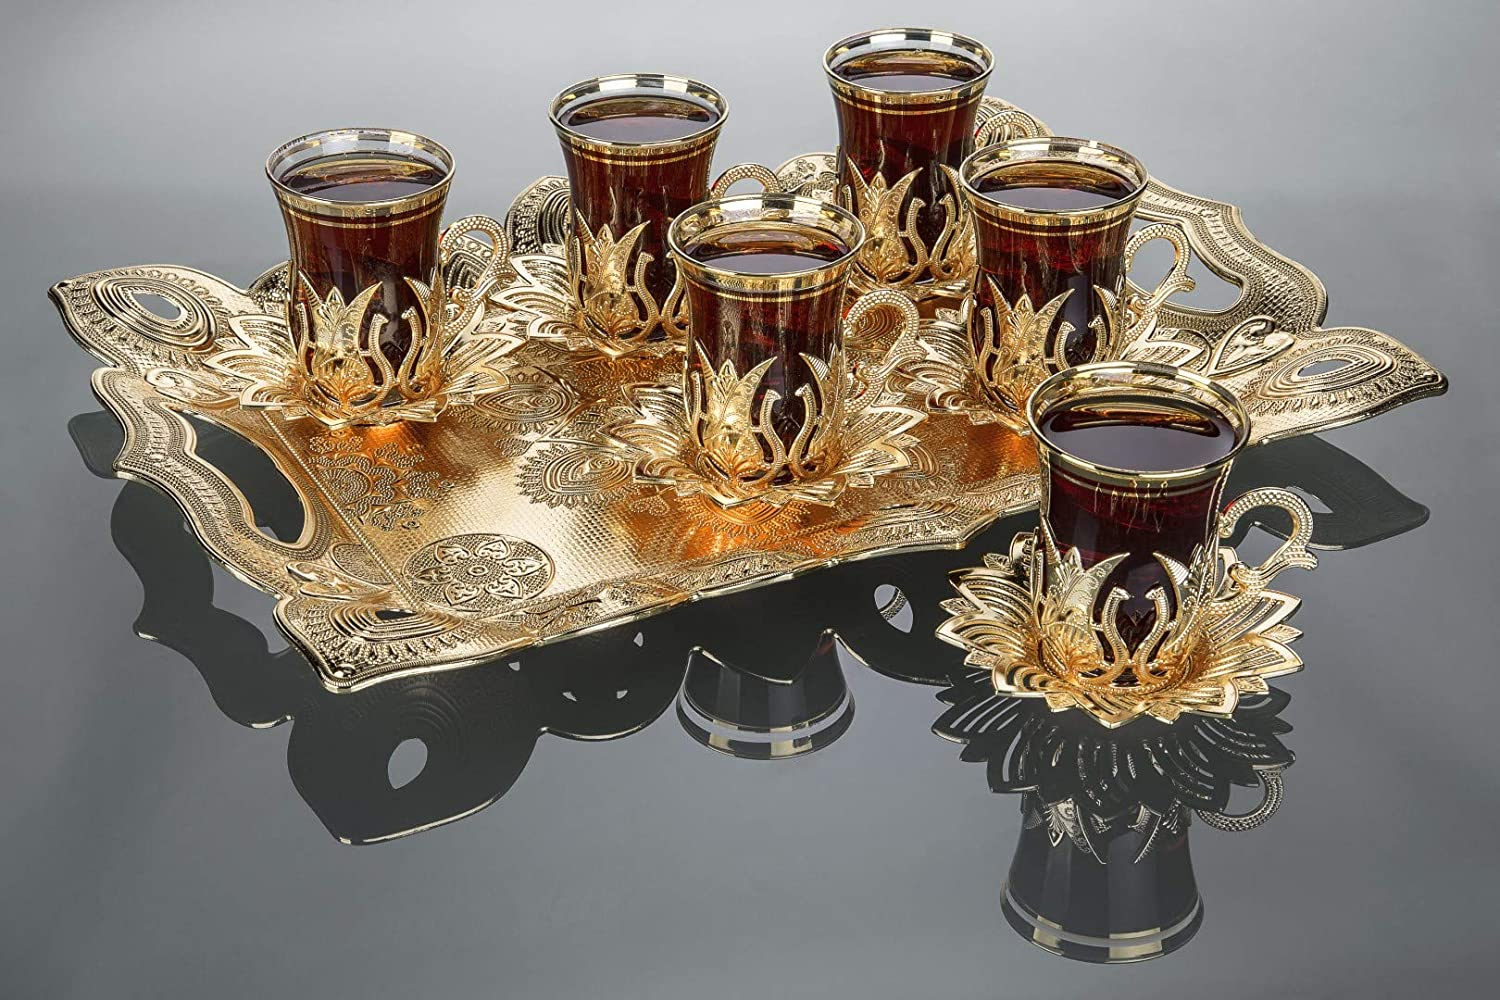 LaModaHome Golden Tea Set of 6 and Tray - Includes 6 Glasses, 6 Saucers Holders, and a Tray - VIP Special Serving Turkish Tulip - Arabic, Moroccan Coffee Sets - Cups and Mugs